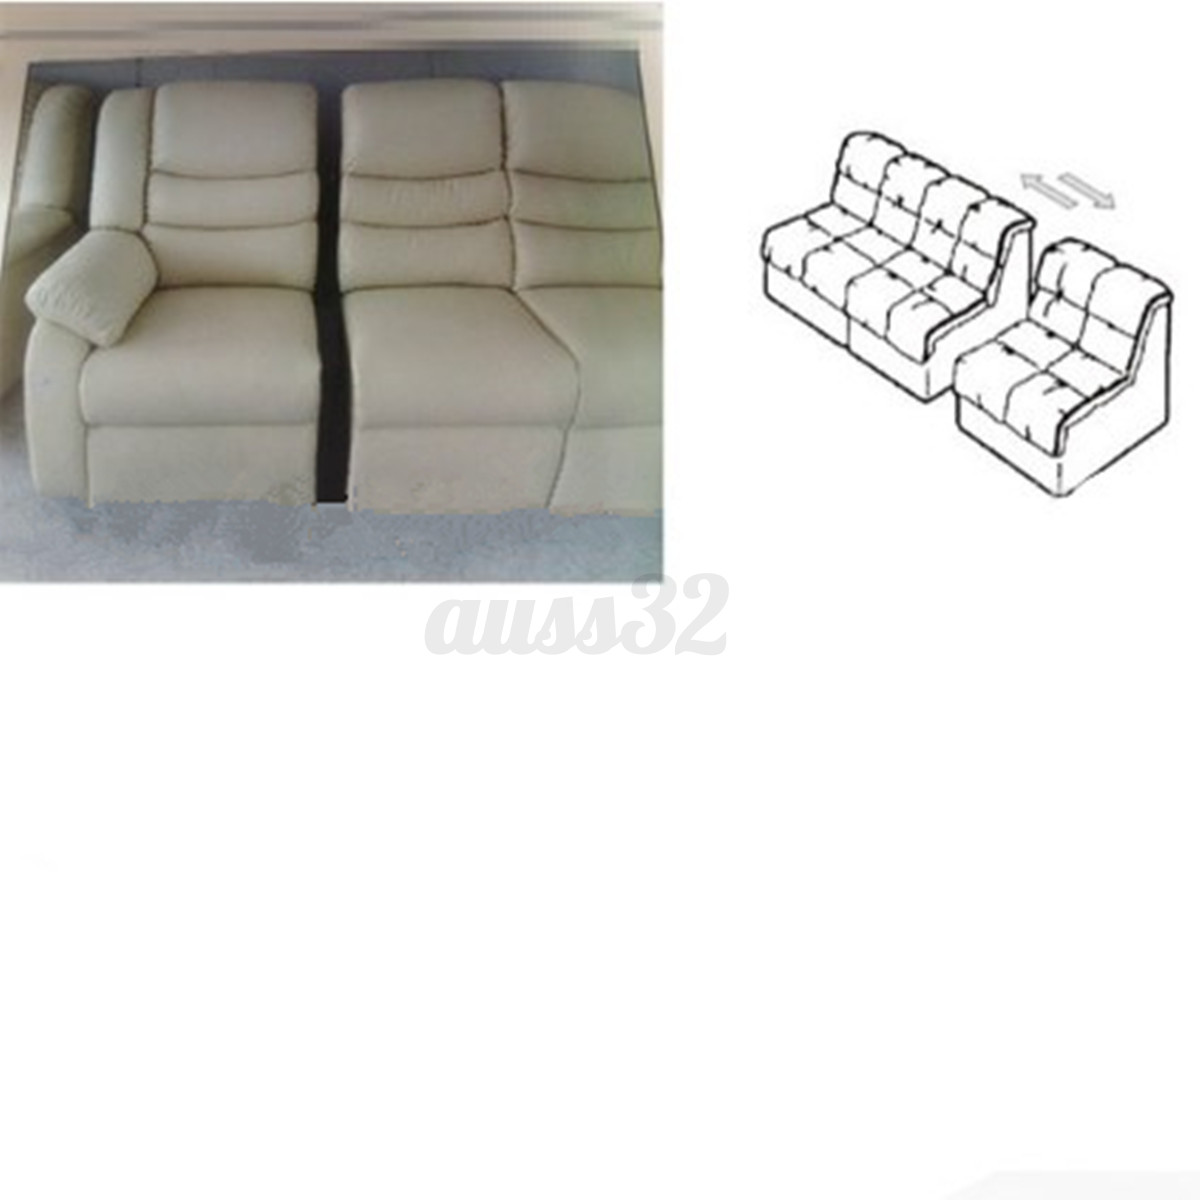 U-Type Iron Sheets Plastic Buckle Sofa Connector Couch